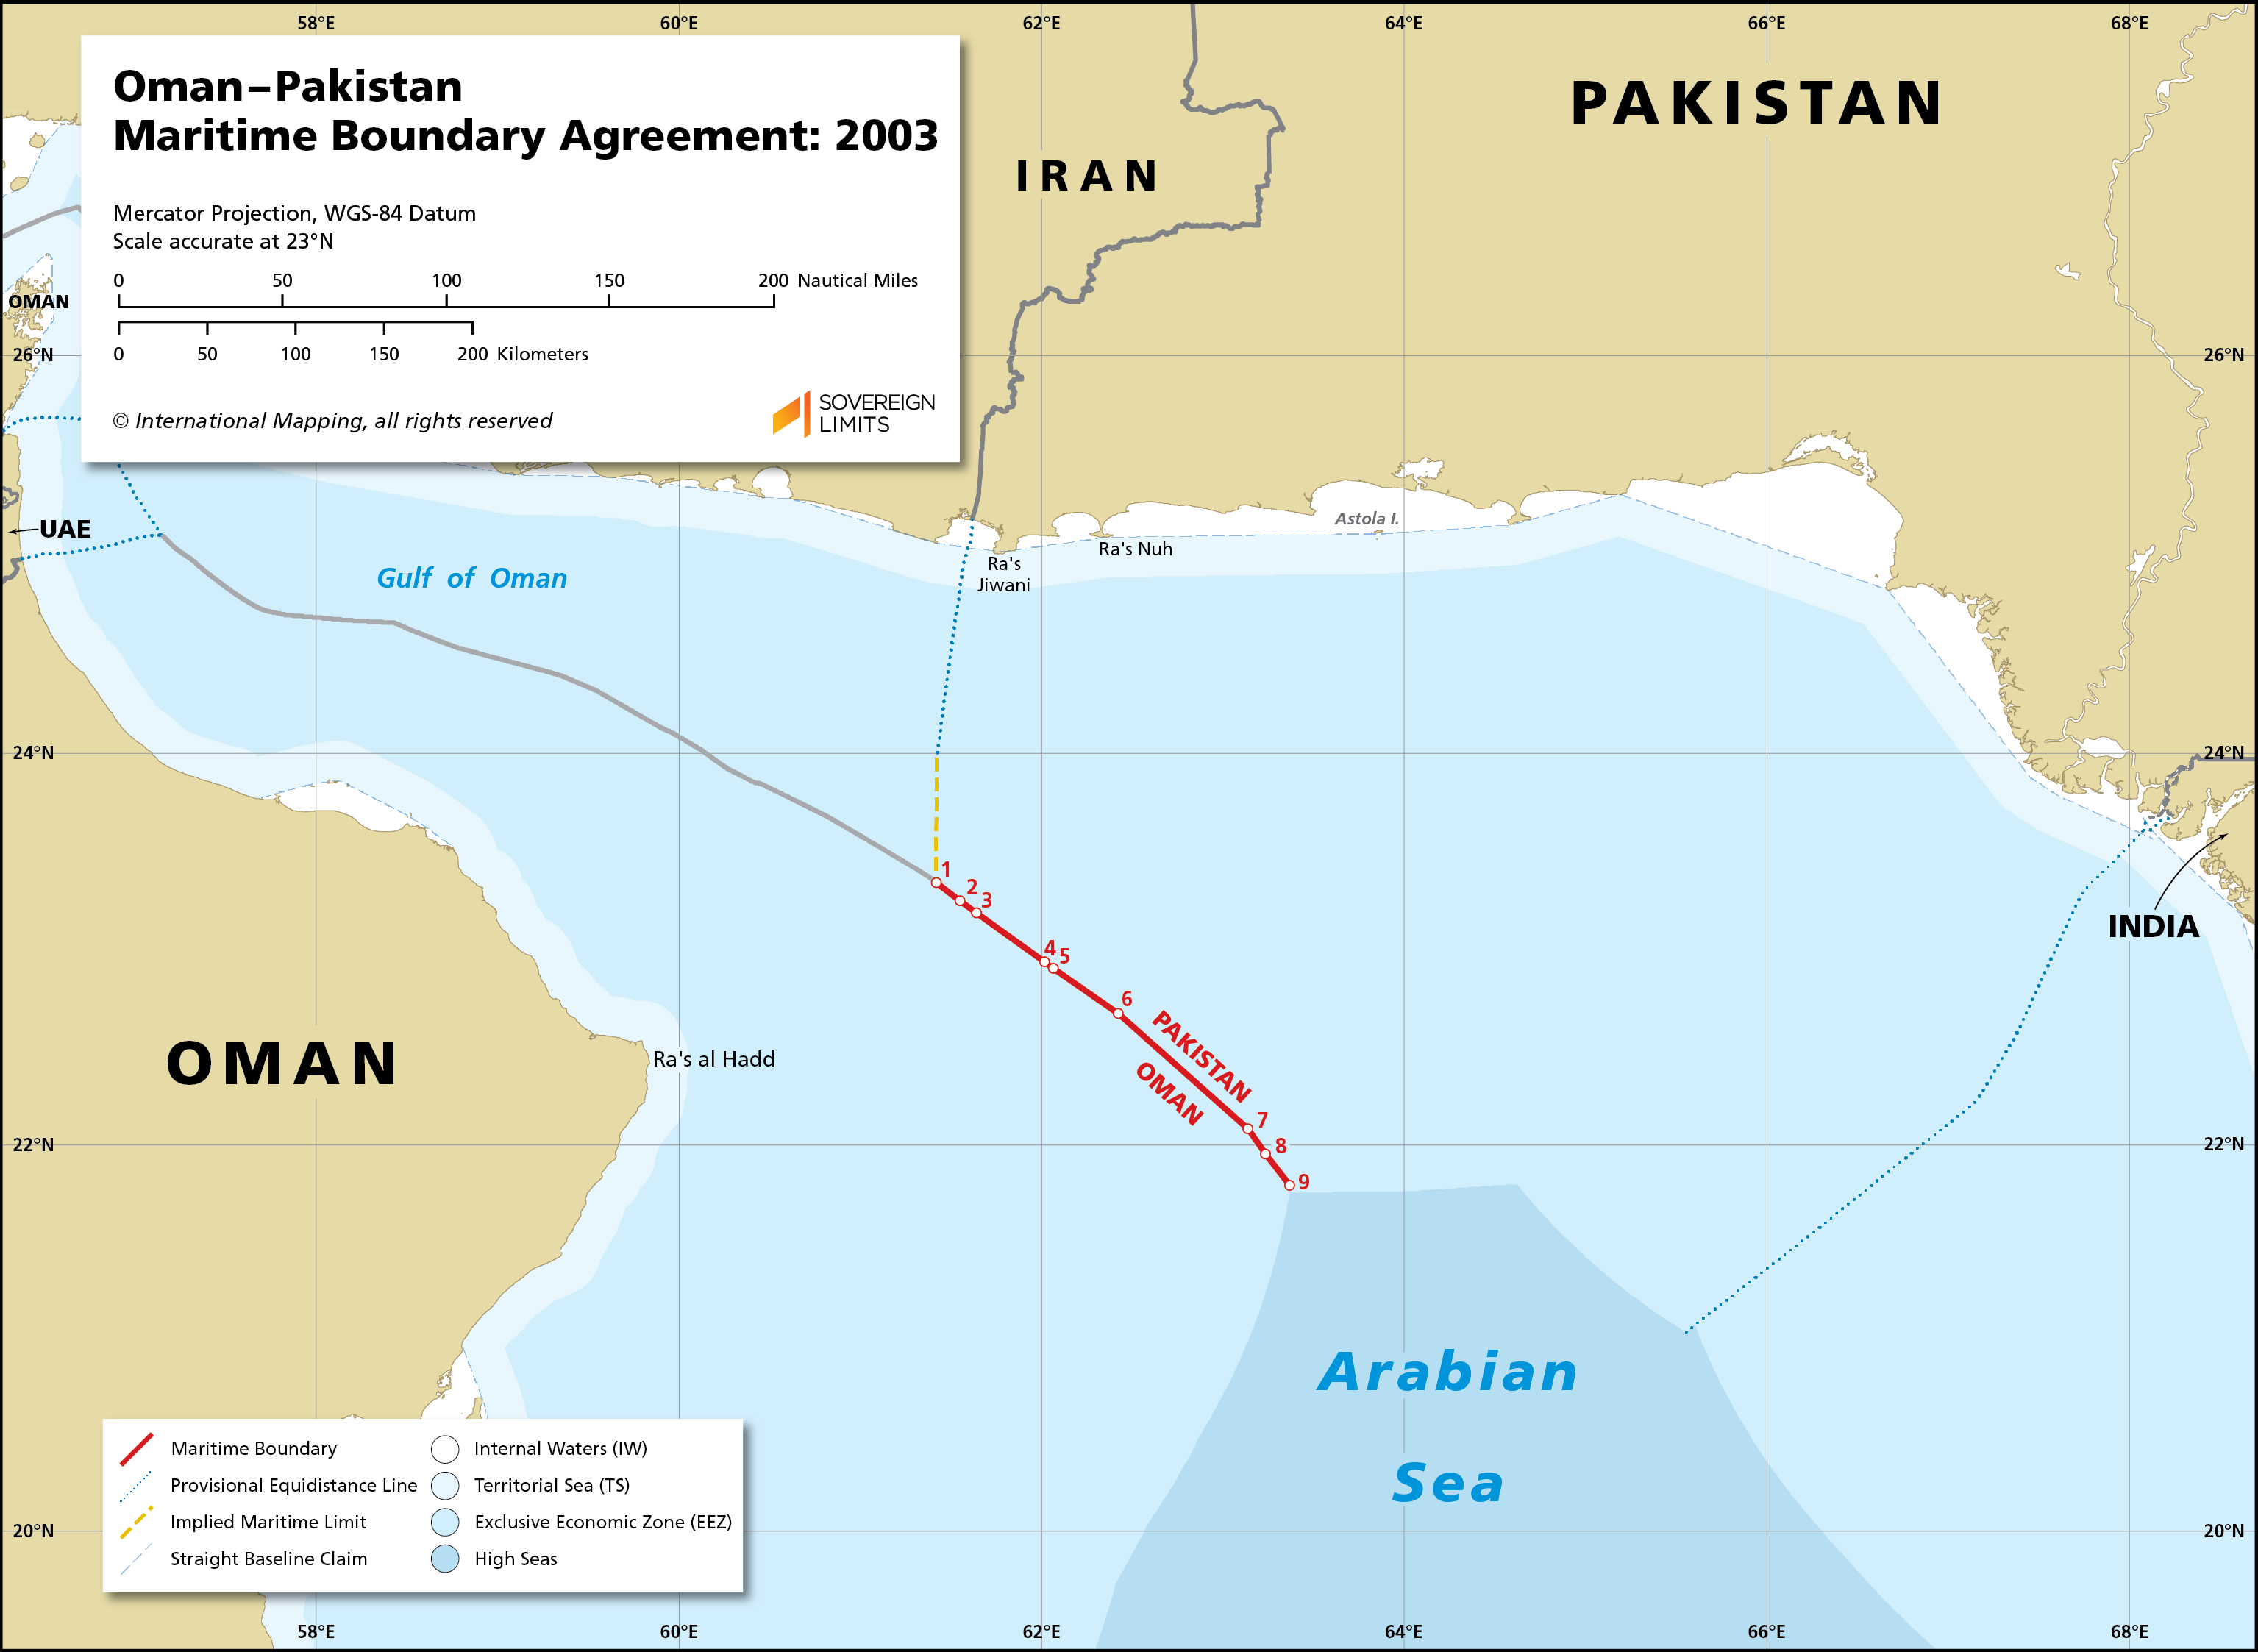 Map showing the maritime boundary between Oman and Pakistan